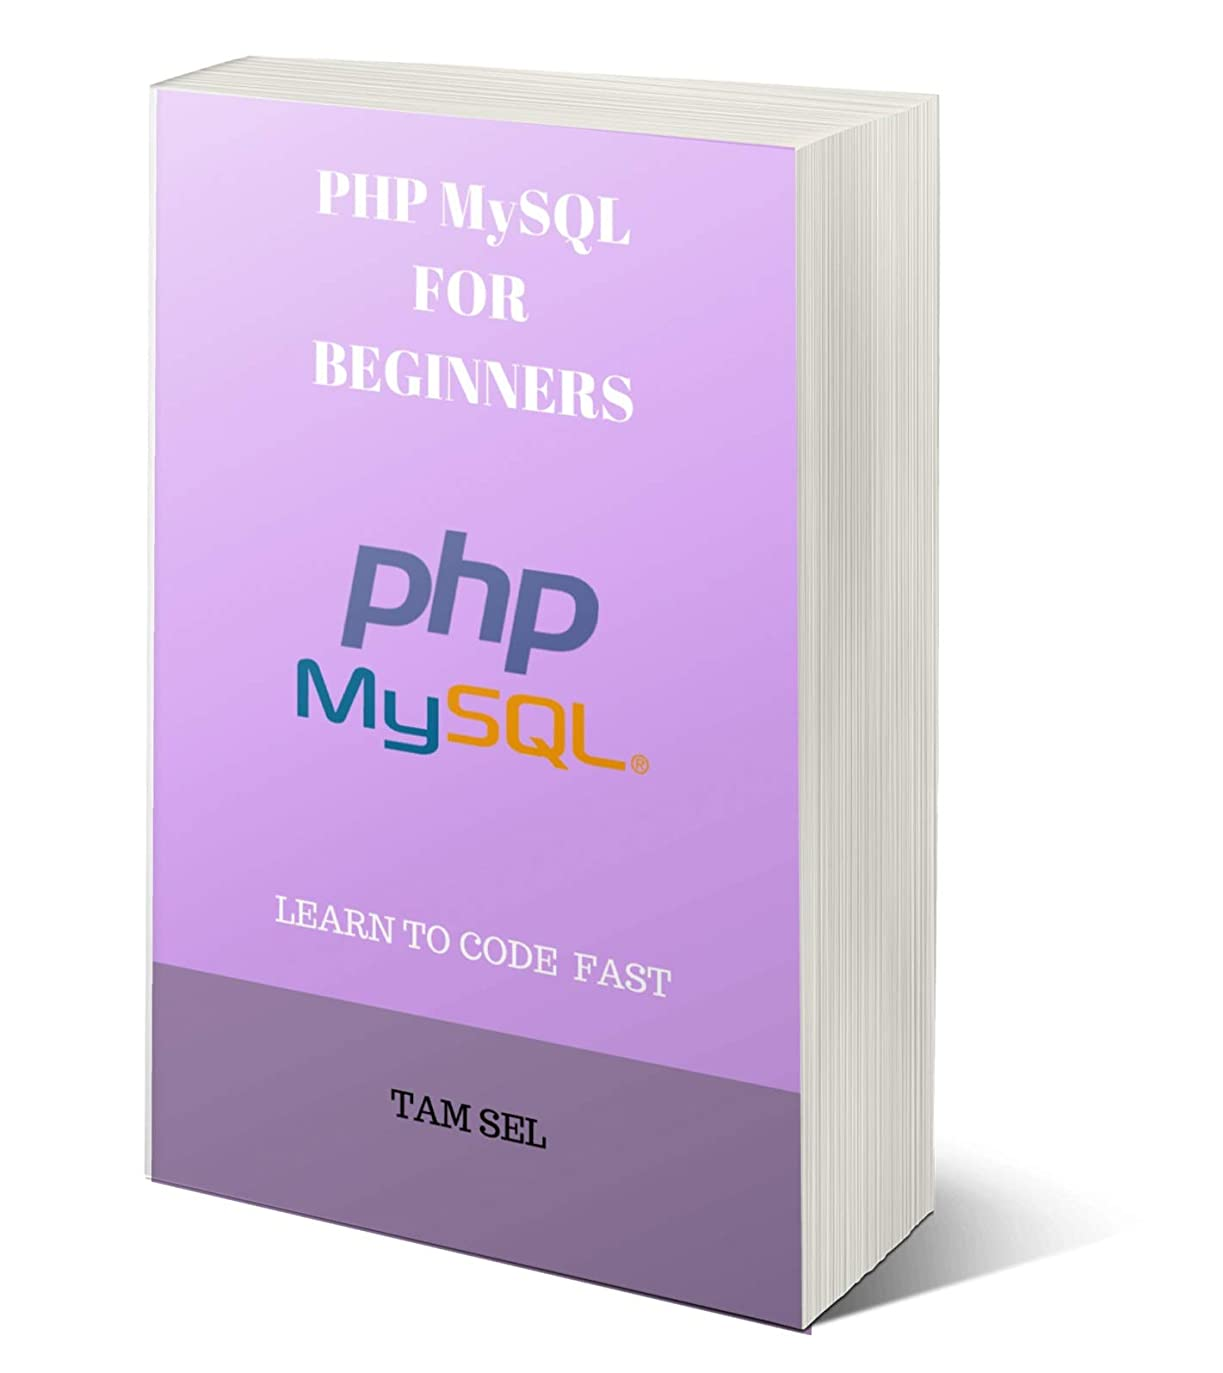 ソフィーコンパクト成功PHP FOR BEGINNERS:  Learn Coding Fast! PHP Programming Language, PHP Crash Course, Quick Start Guide, PHP Tutorial Book by the PHP Program Examples, In ... Ultimate Beginner's Guide (English Edition)